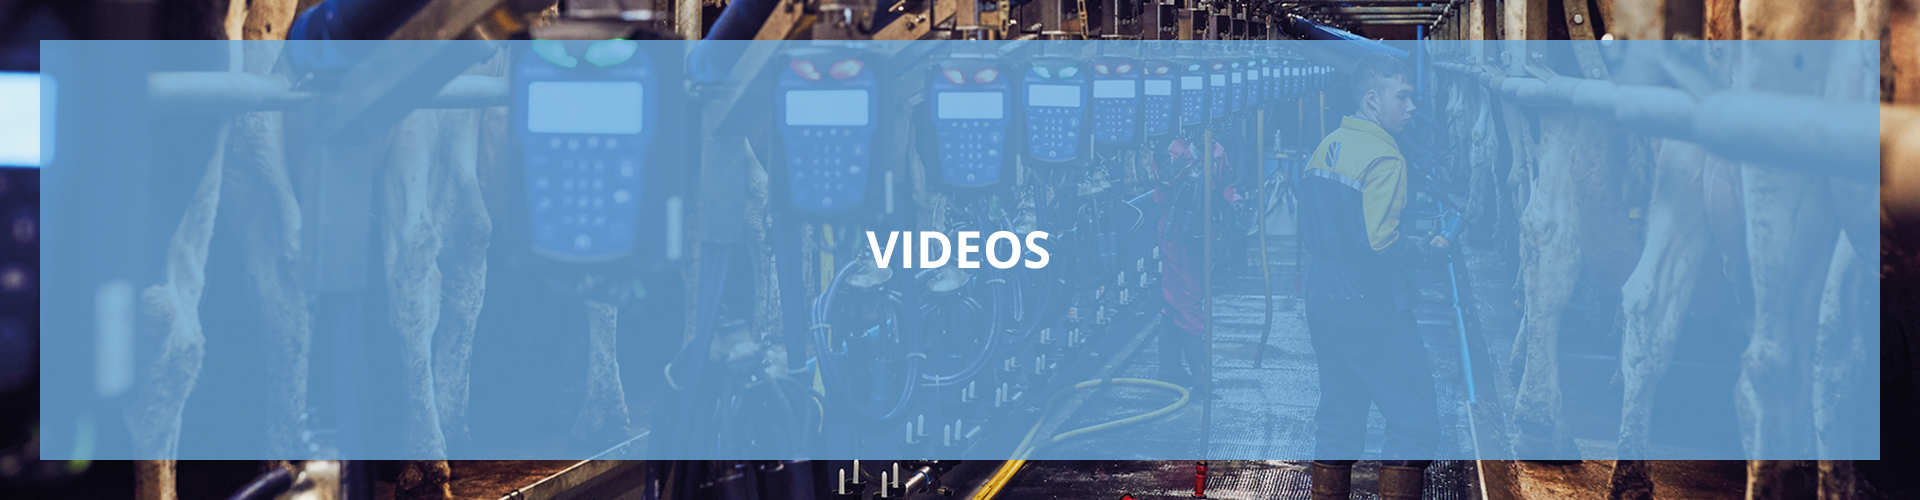 main video light blue banner dutch 1920x500px